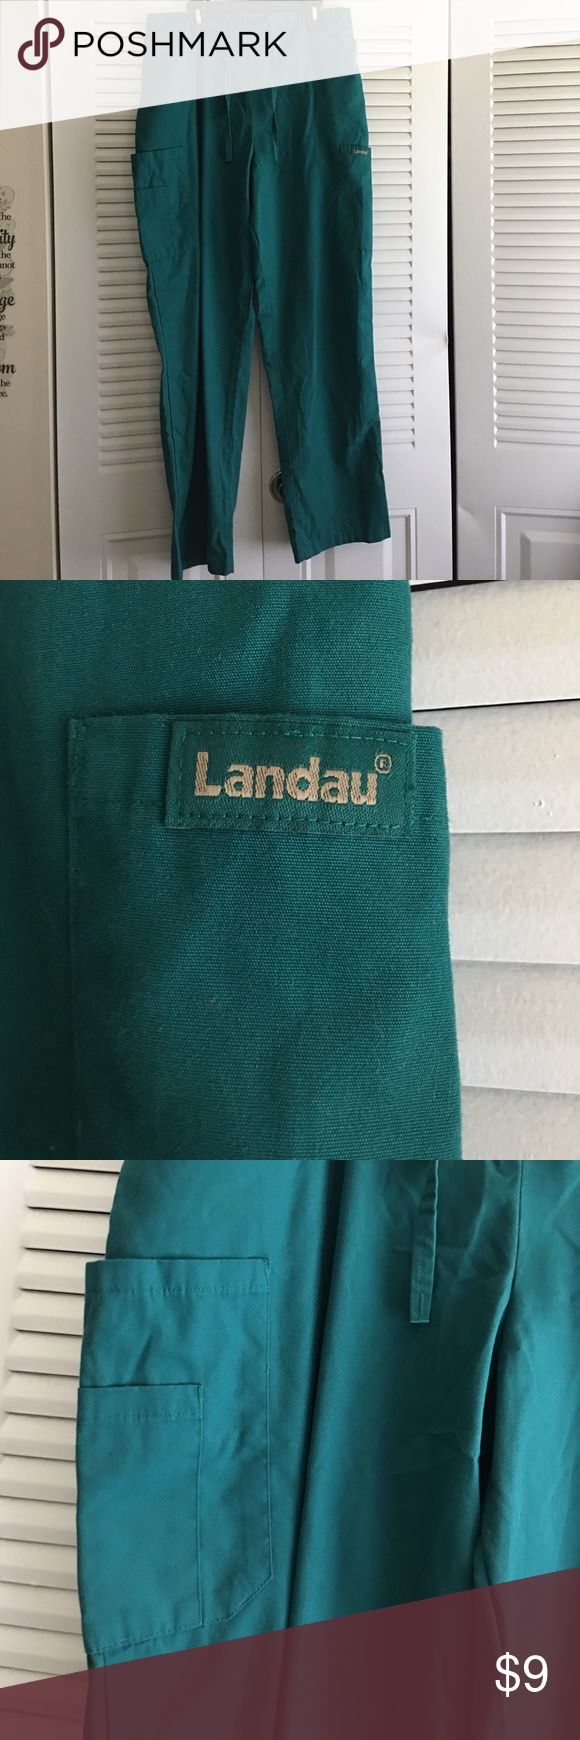 Scrub pants Landau Worn Landau scrub pants size medium cargo pockets draw string front Landau Pants